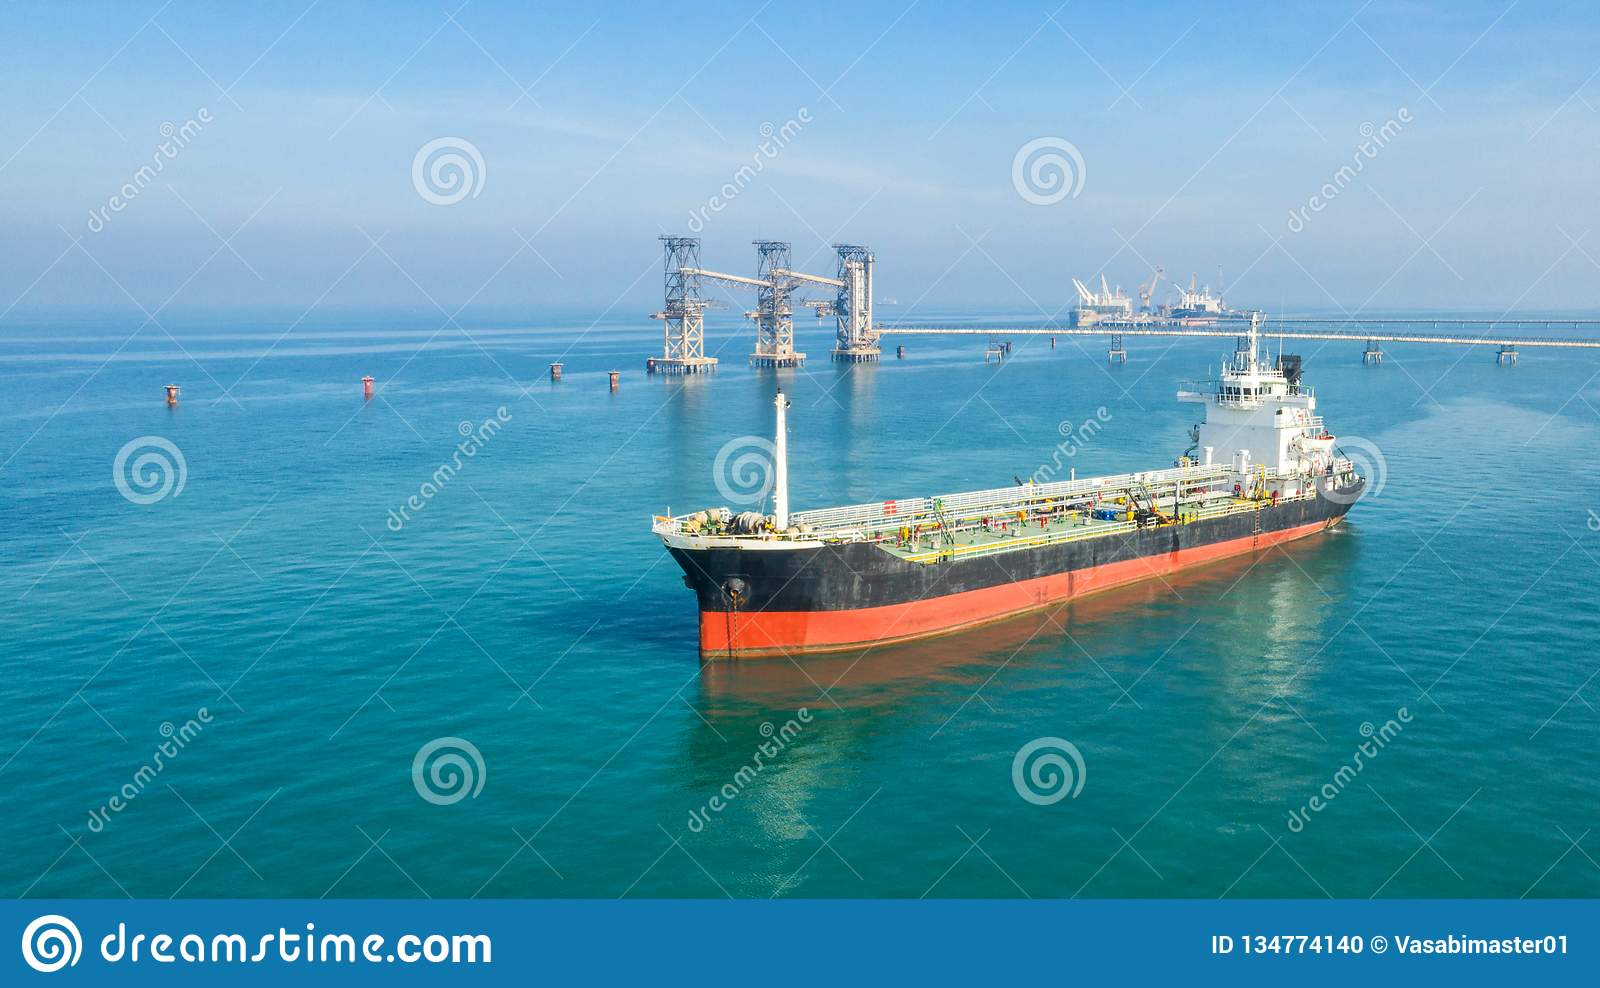 Oil tanker, gas tanker in the high sea.Refinery Industry cargo ship,aerial view,Thailand, in import export, LPG,oil refinery,